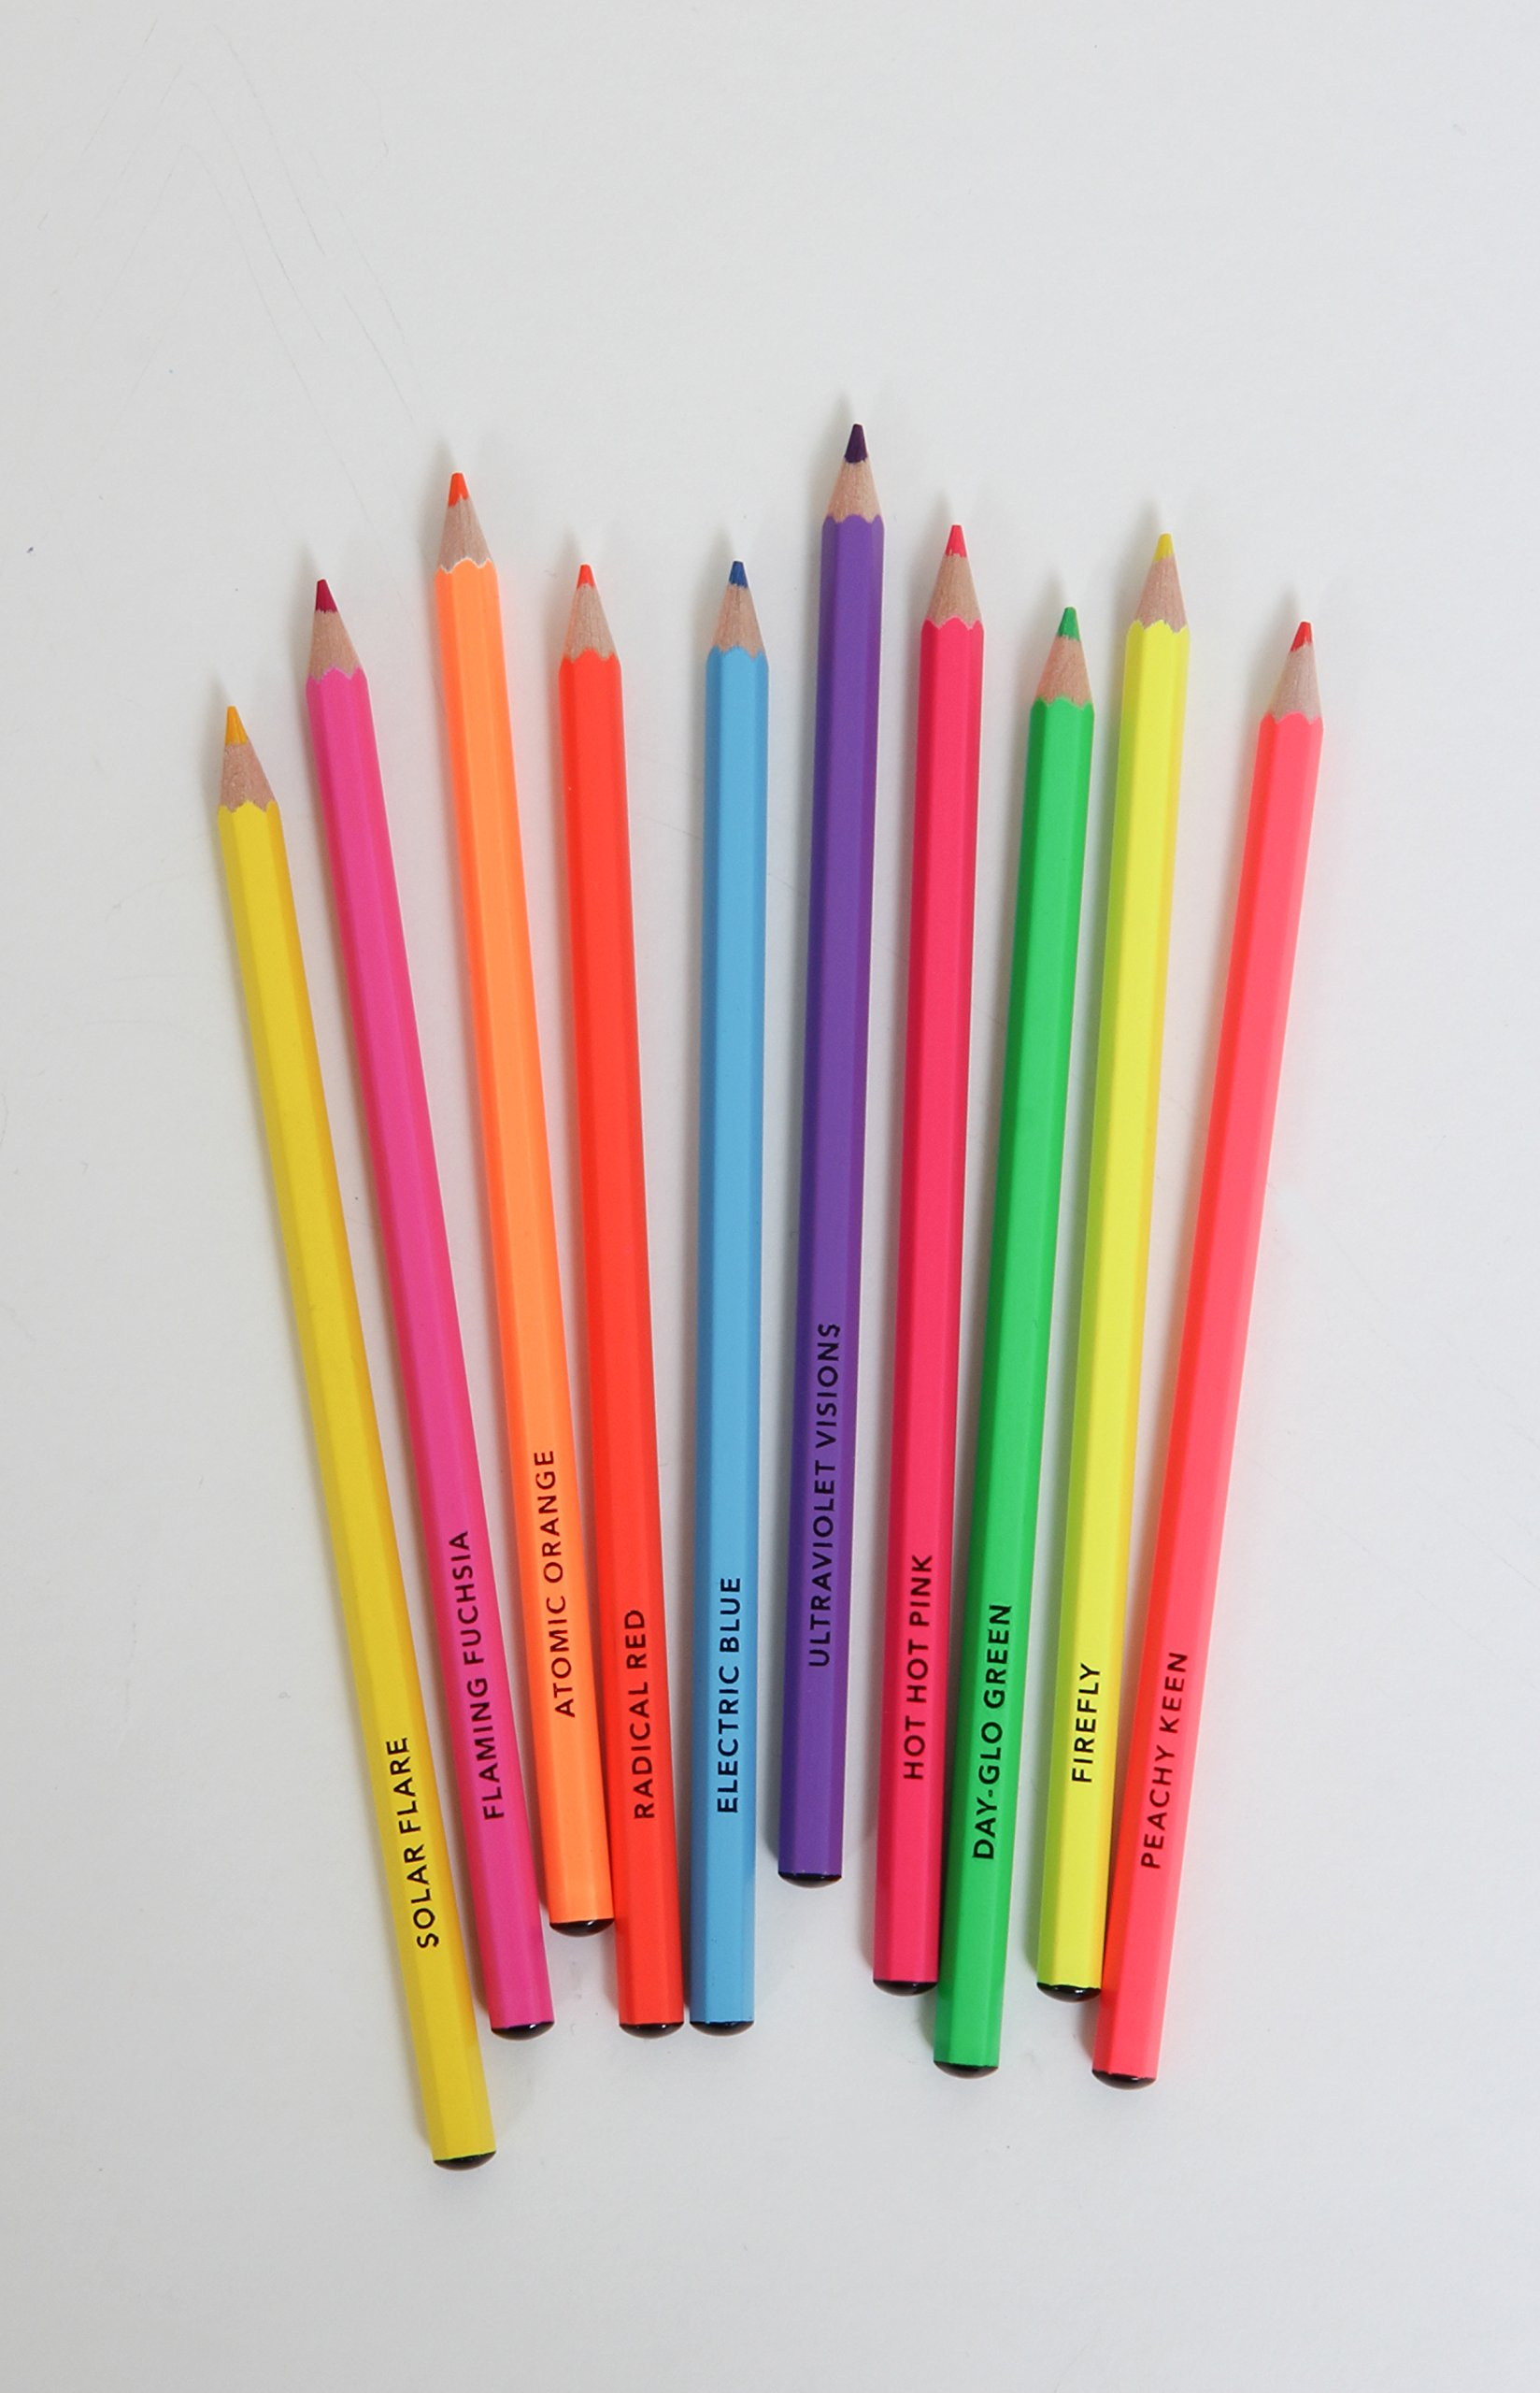 Bright Ideas Neon Colored Pencils: Chronicle Books: 9781452154787 ...